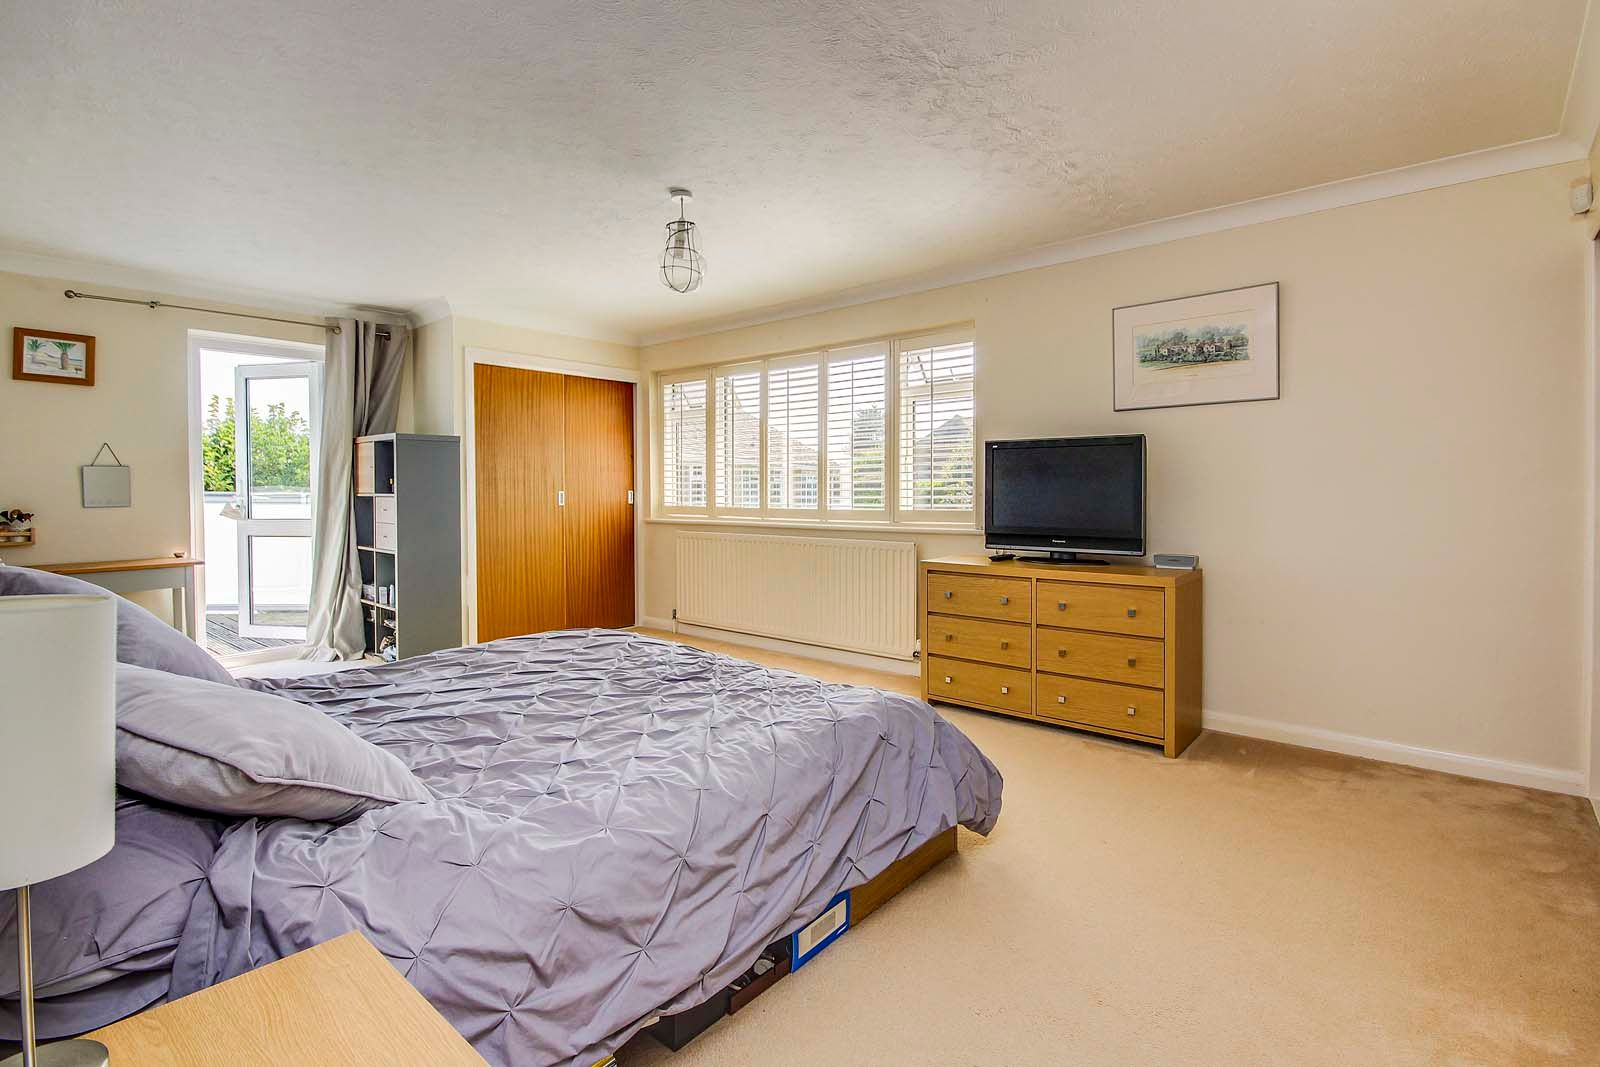 4 bed House for sale in Rustington - Bedroom (Property Image 5)